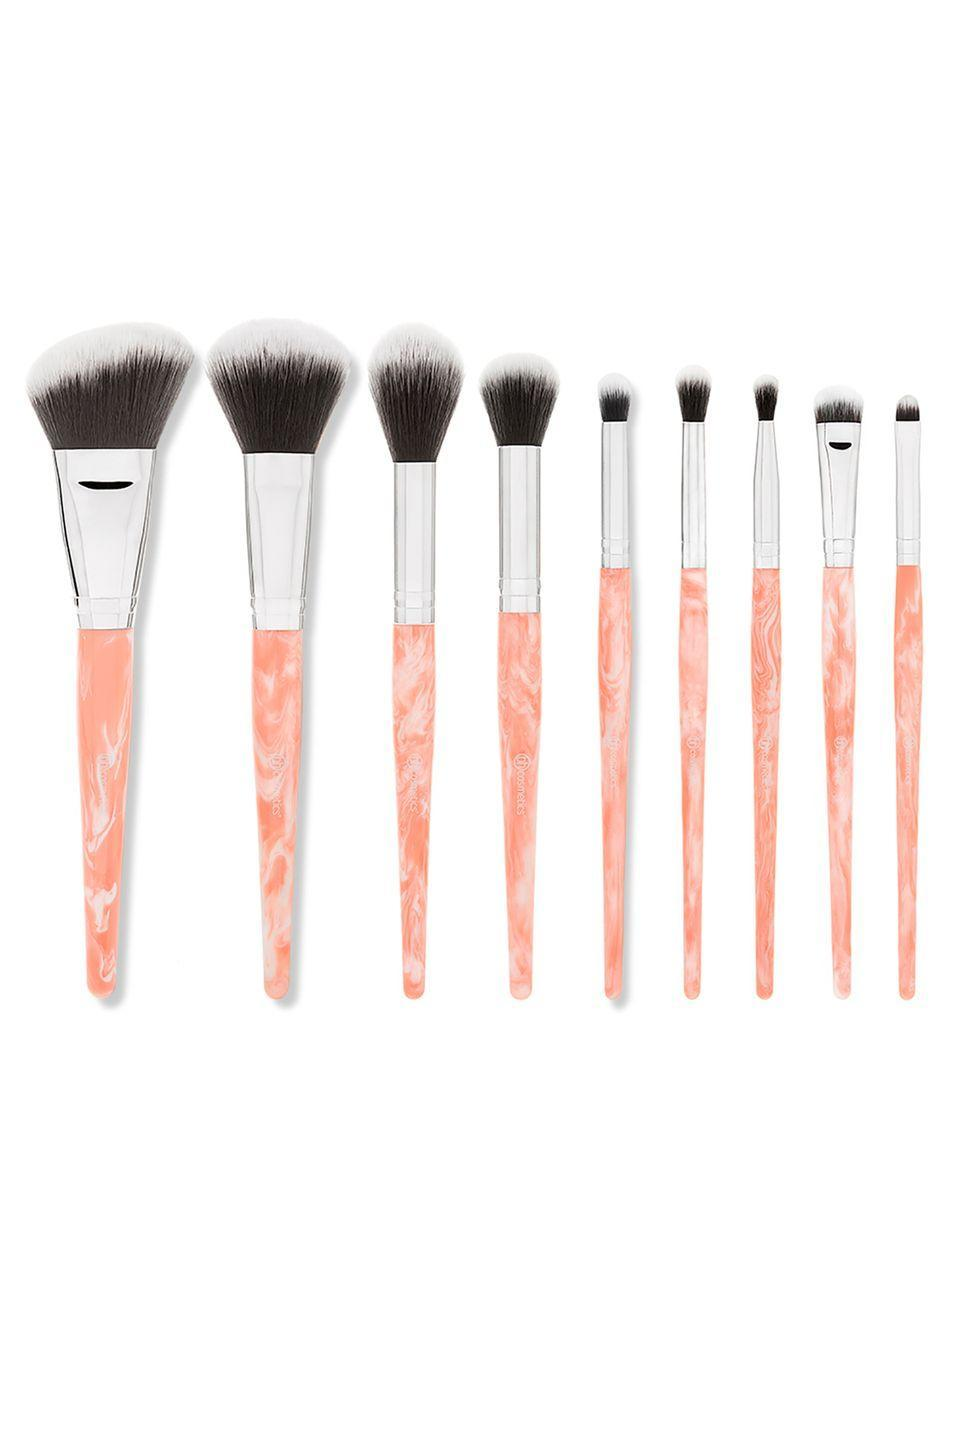 """<p>$13</p><p><a class=""""link rapid-noclick-resp"""" href=""""https://go.redirectingat.com?id=74968X1596630&url=https%3A%2F%2Fwww.bhcosmetics.com%2Frose-quartz-9-piece-brush-set&sref=http%3A%2F%2Fwww.womansday.com%2Flife%2Fg955%2Fgifts-for-her%2F"""" rel=""""nofollow noopener"""" target=""""_blank"""" data-ylk=""""slk:SHOP NOW"""">SHOP NOW</a></p><p>Everyone needs versatile <a href=""""https://www.womansday.com/style/beauty/a5410/how-to-clean-your-makeup-brushes-114566/"""" rel=""""nofollow noopener"""" target=""""_blank"""" data-ylk=""""slk:makeup brushes"""" class=""""link rapid-noclick-resp"""">makeup brushes</a> that look good, and these beauties do the trick. </p>"""